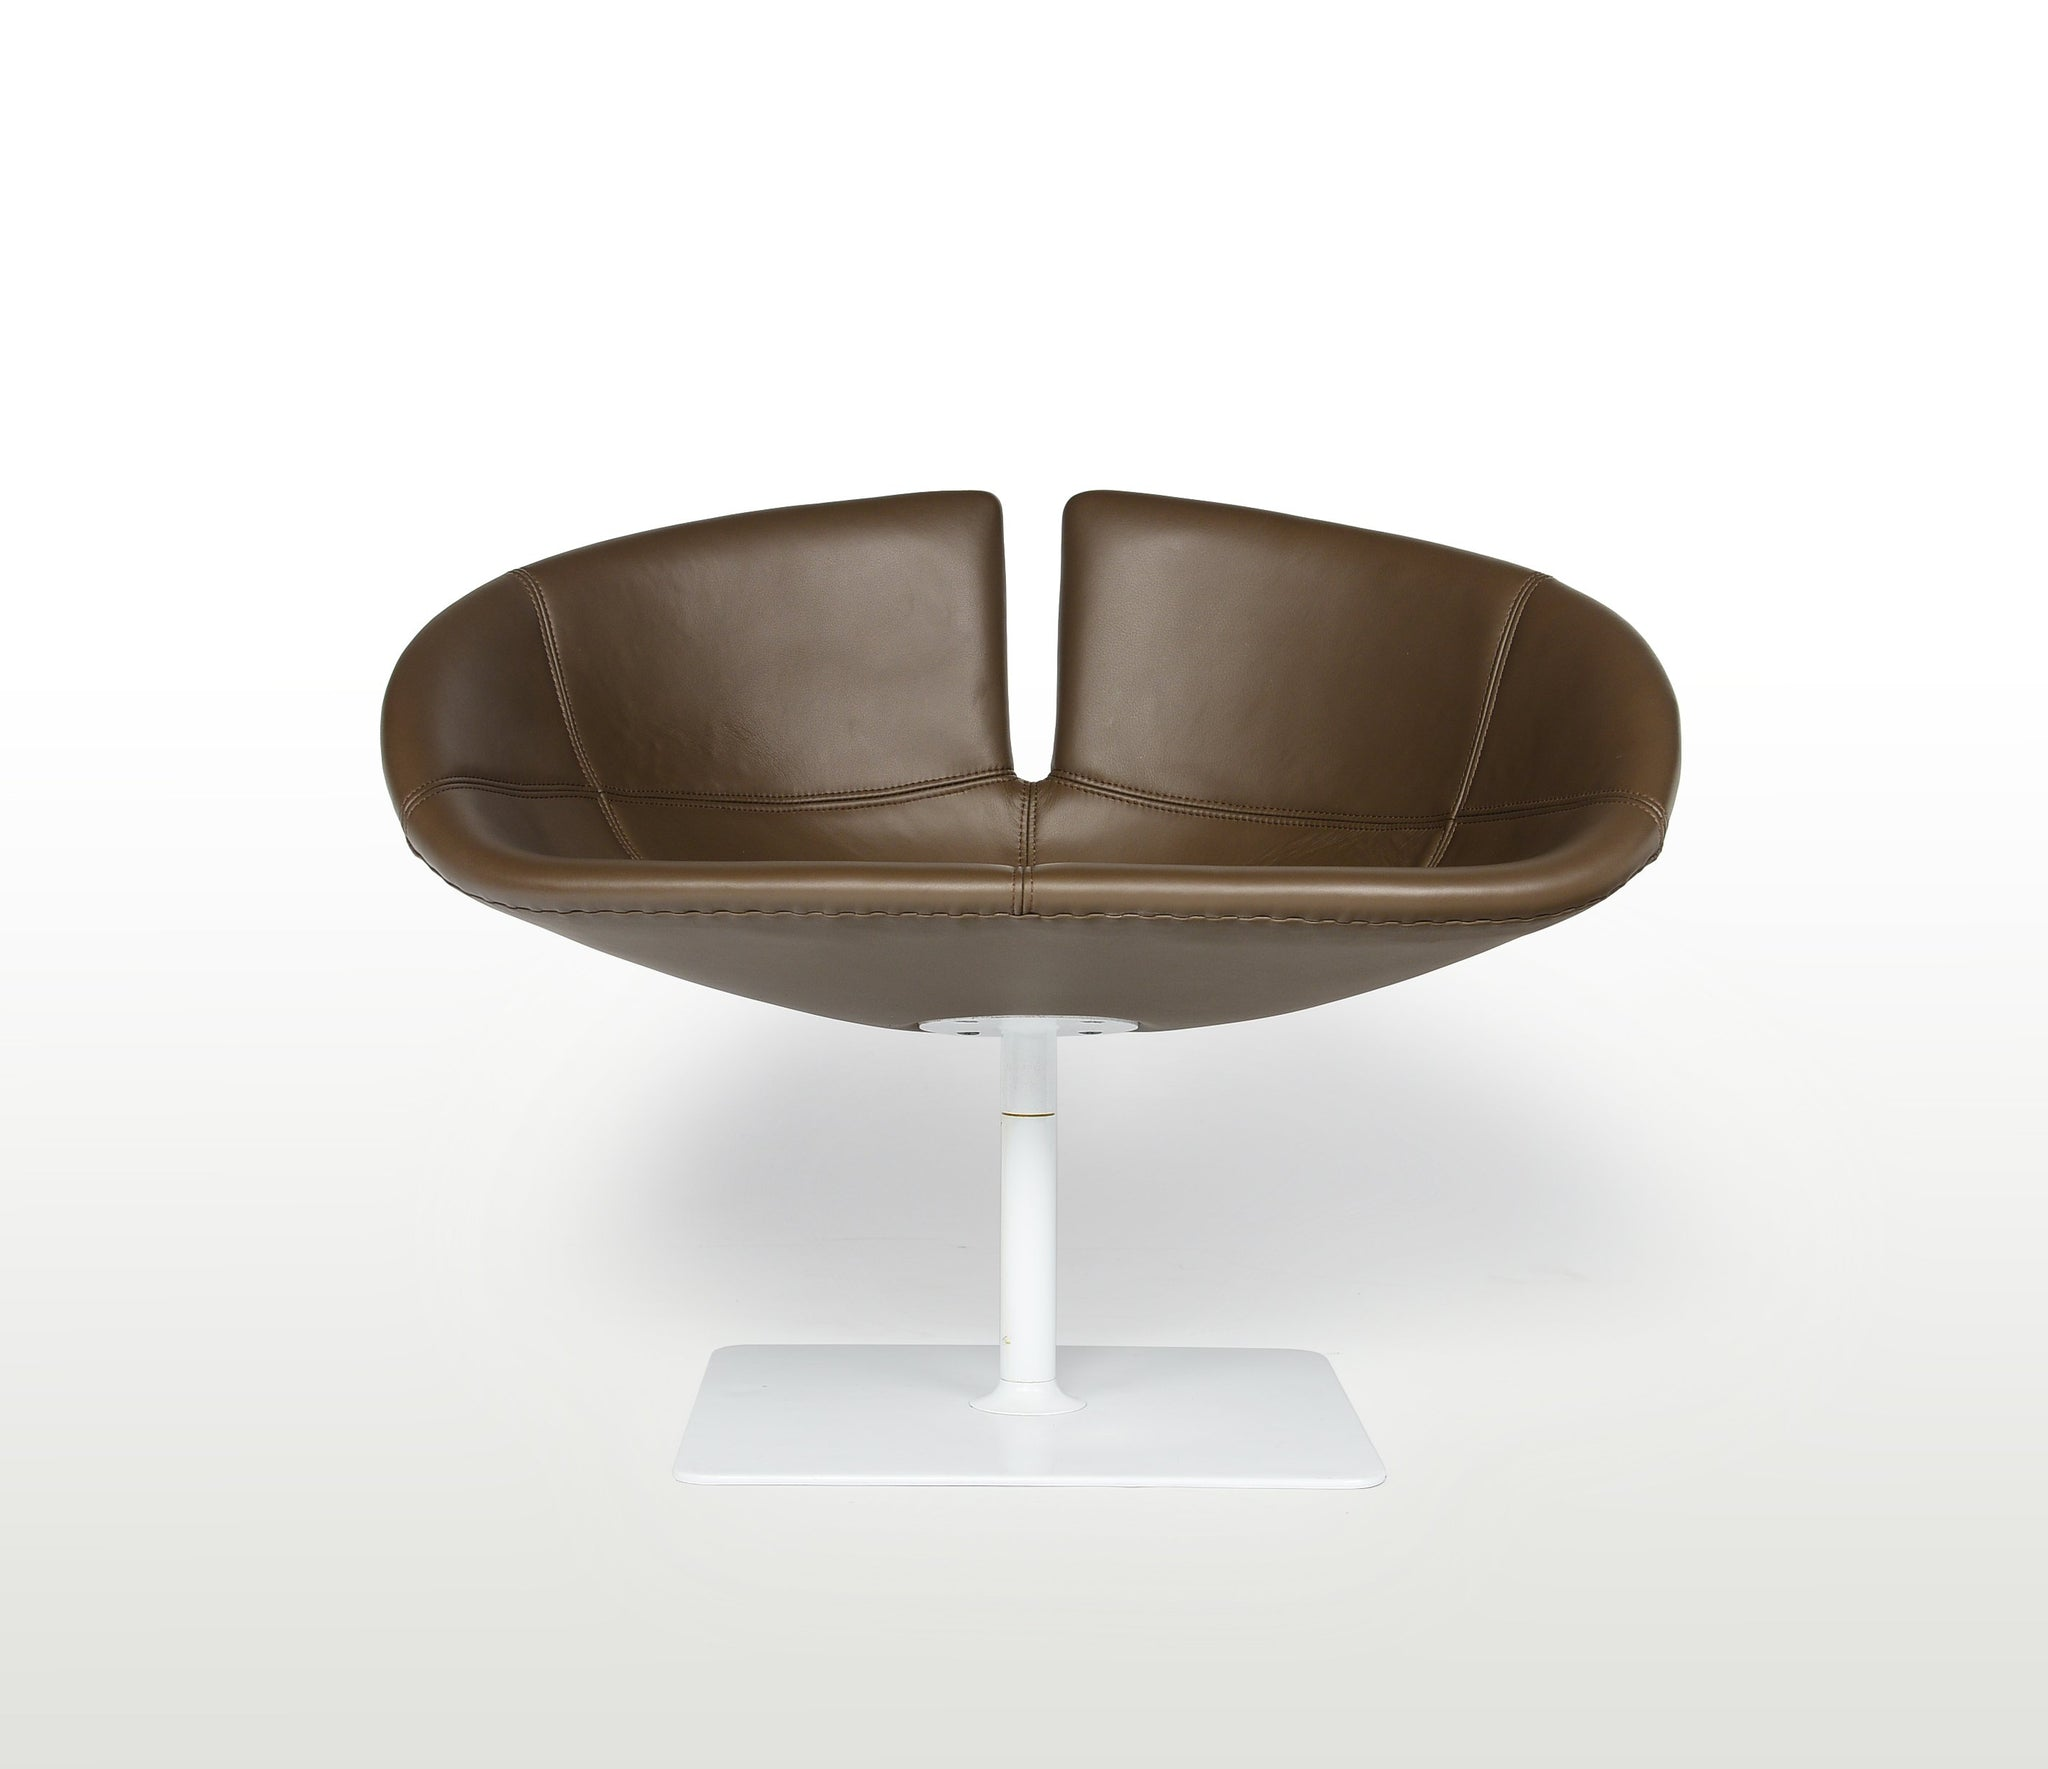 Fjord Swivel Chair - Repro Furniture